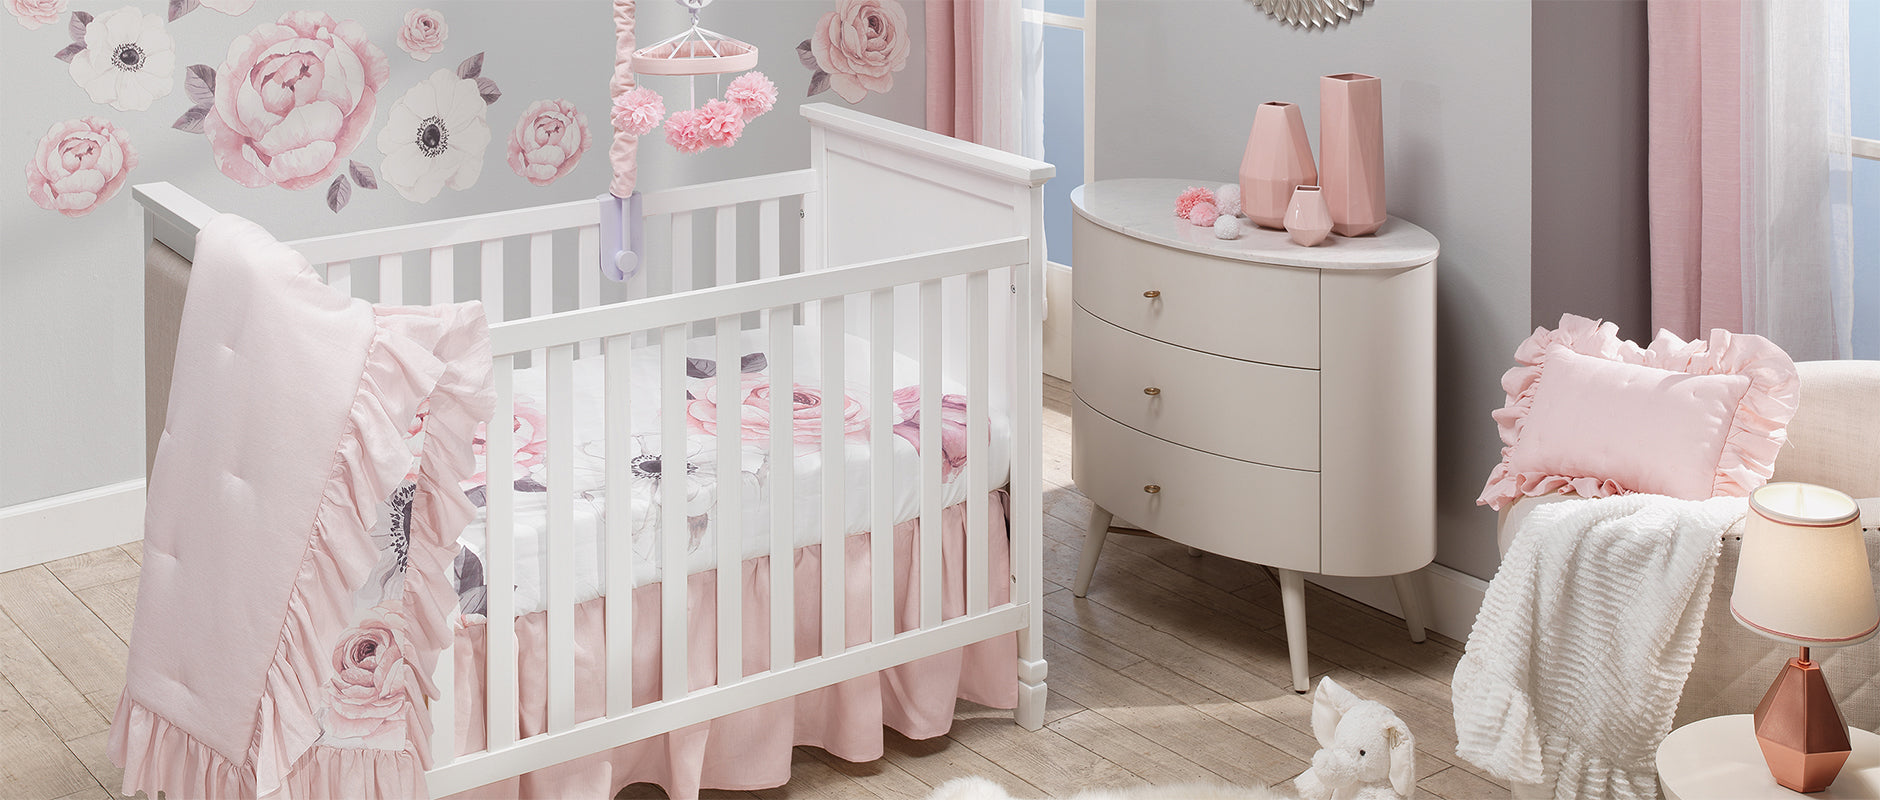 Floral Garden Pink Watercolor Nursery Crib Bedding